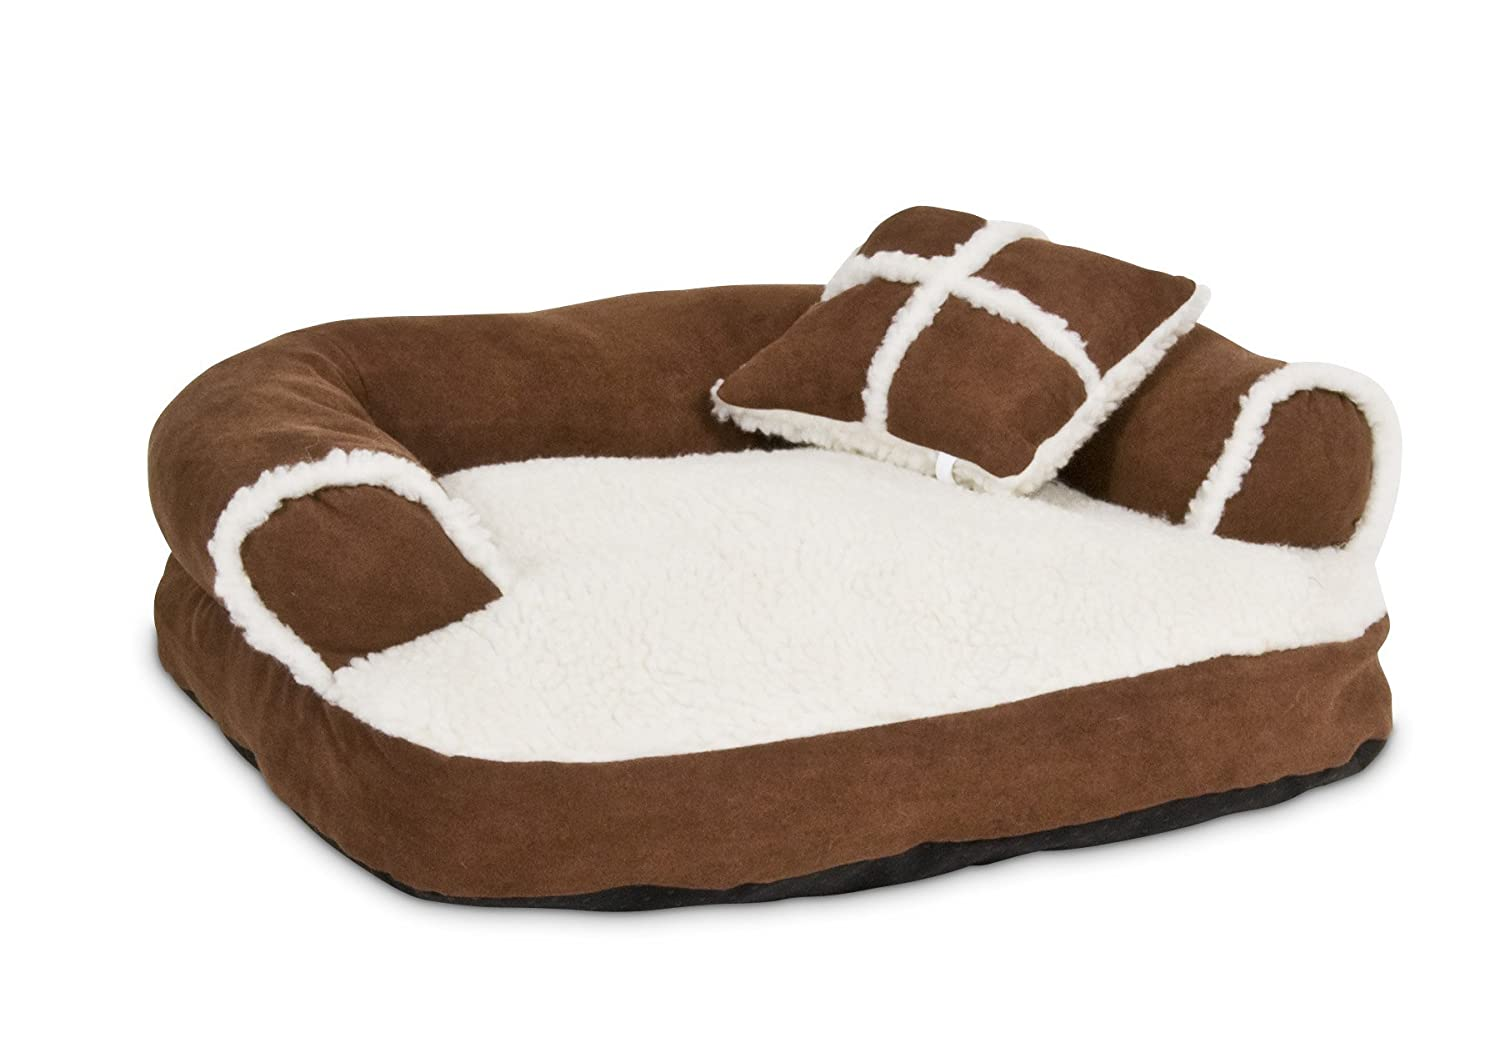 Dog beds that look like couches - Amazon Com Petmate Aspen Pet Sofa Bed With Pillow 20 X 16 Inches Colors May Vary Pet Beds Pet Supplies